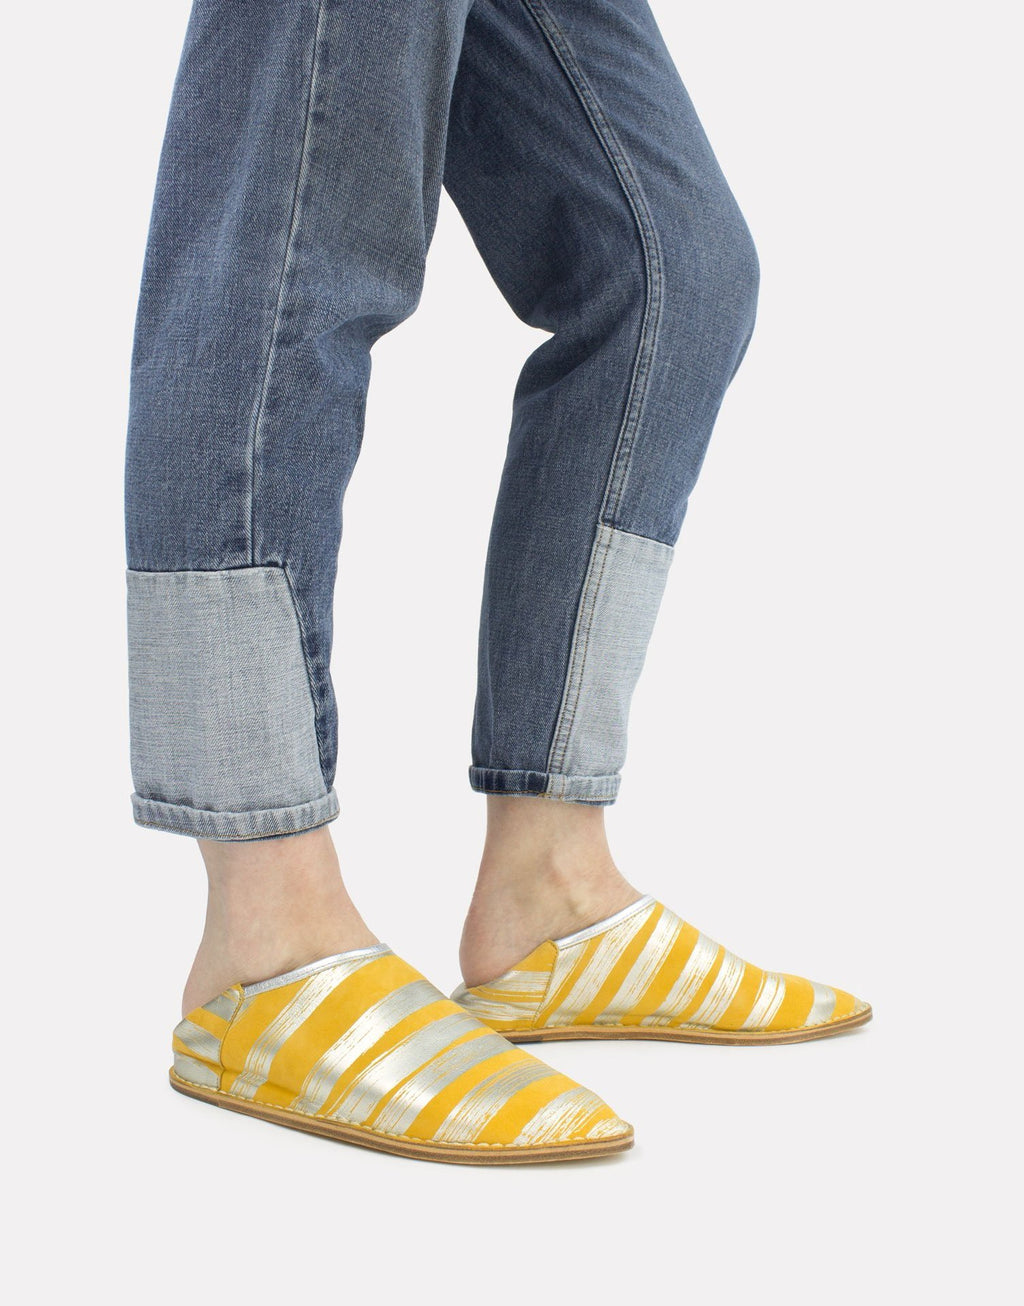 Yellow and Silver Stripe Leather Slip On Slipper Shoe worn with denim by Georgina Goodman